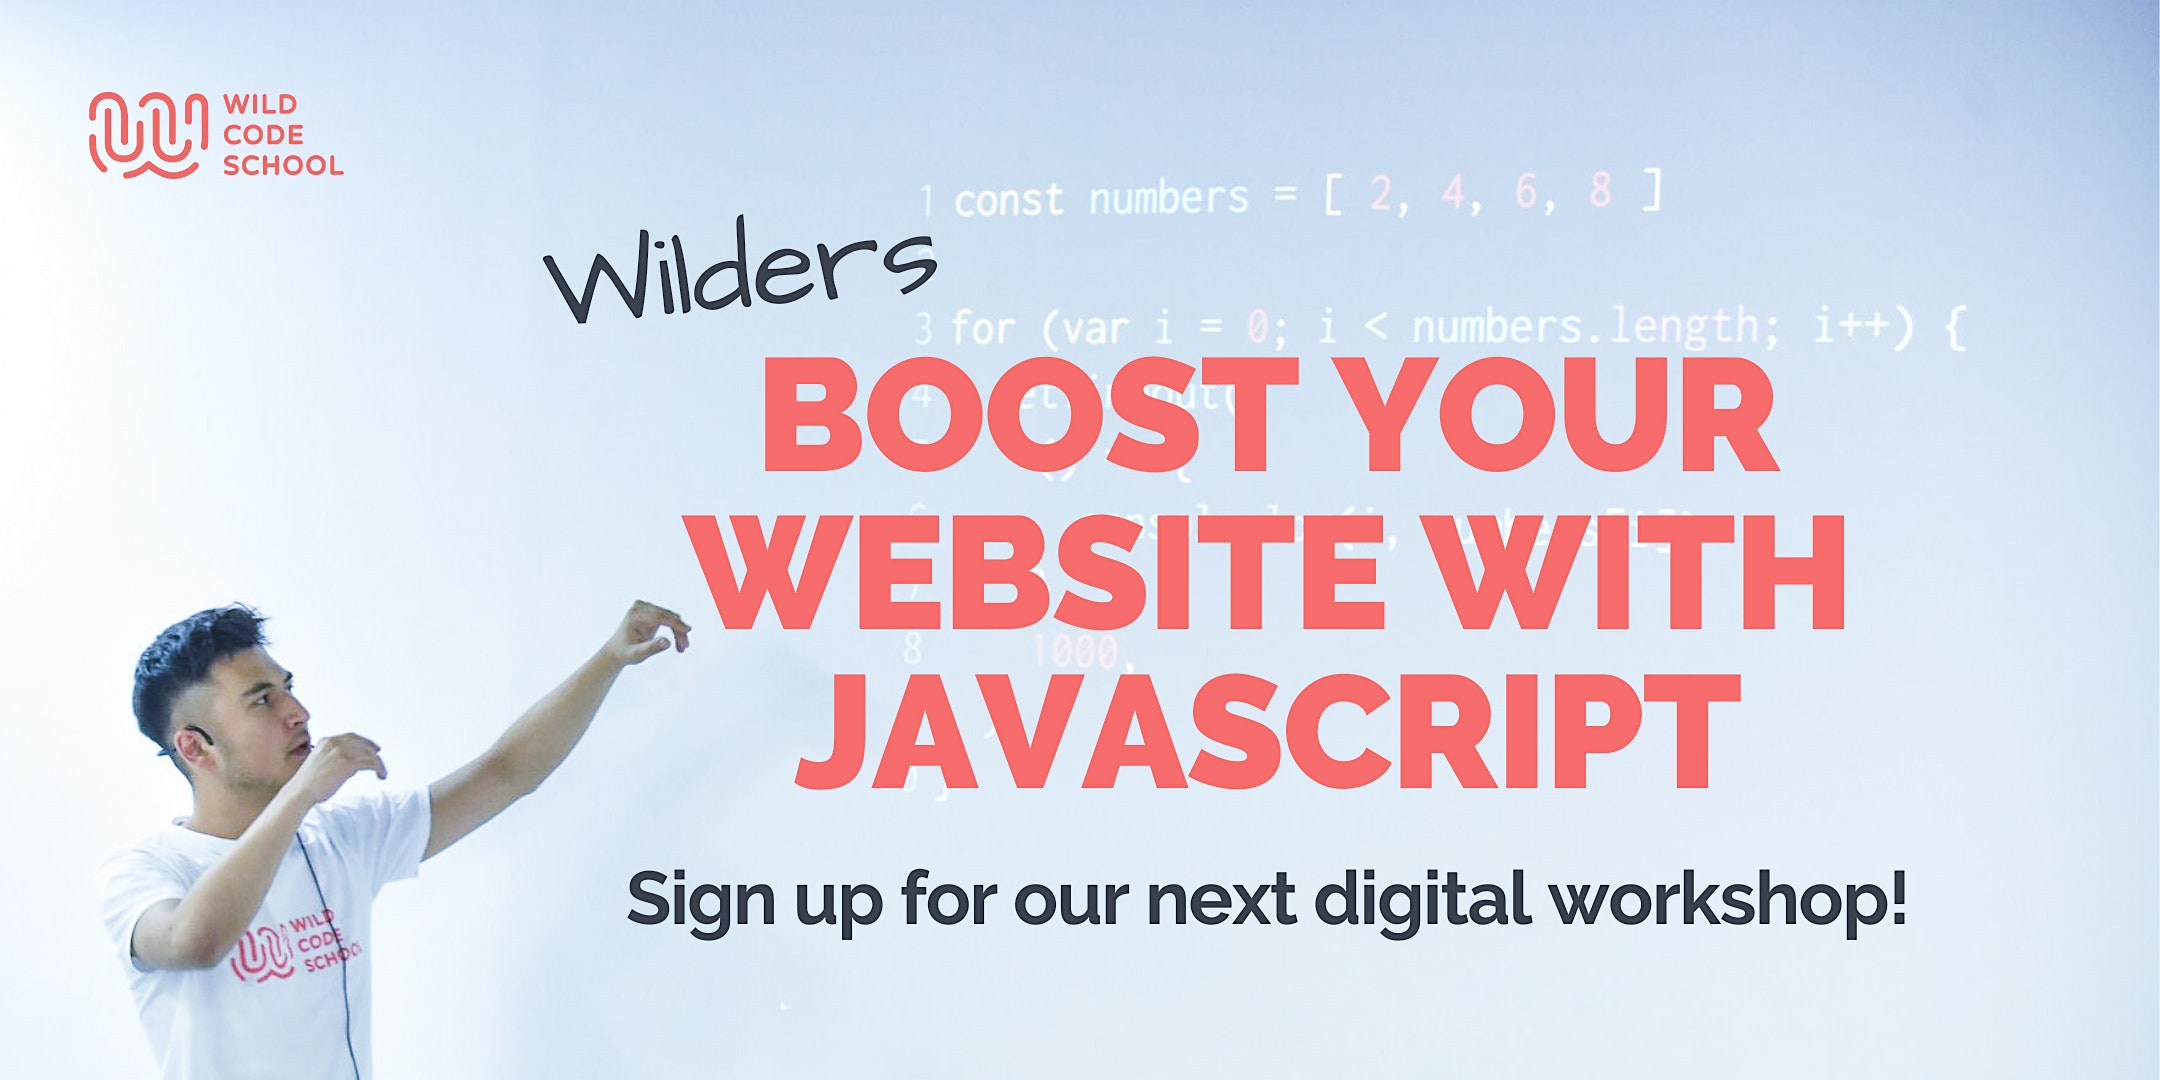 FREE CODING WORKSHOP! Boost your website with JavaScript!